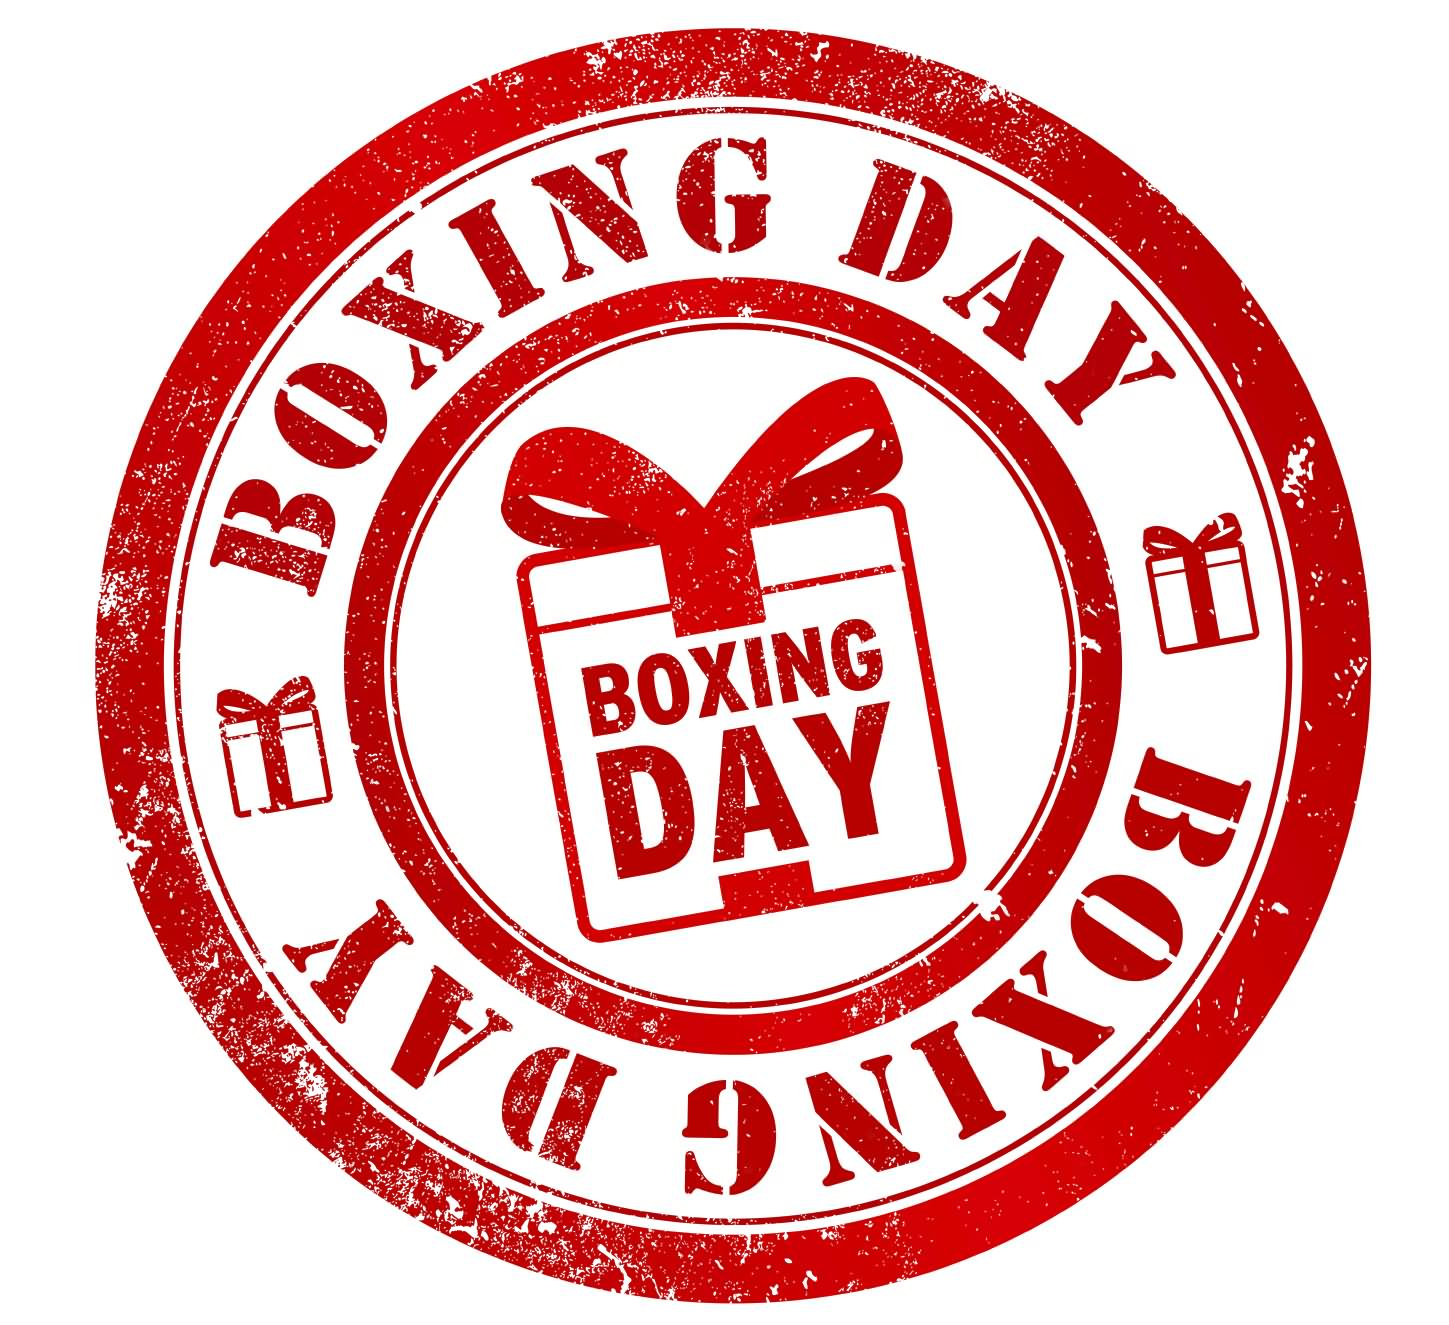 Boxing Day Red Rubber Stamp Image